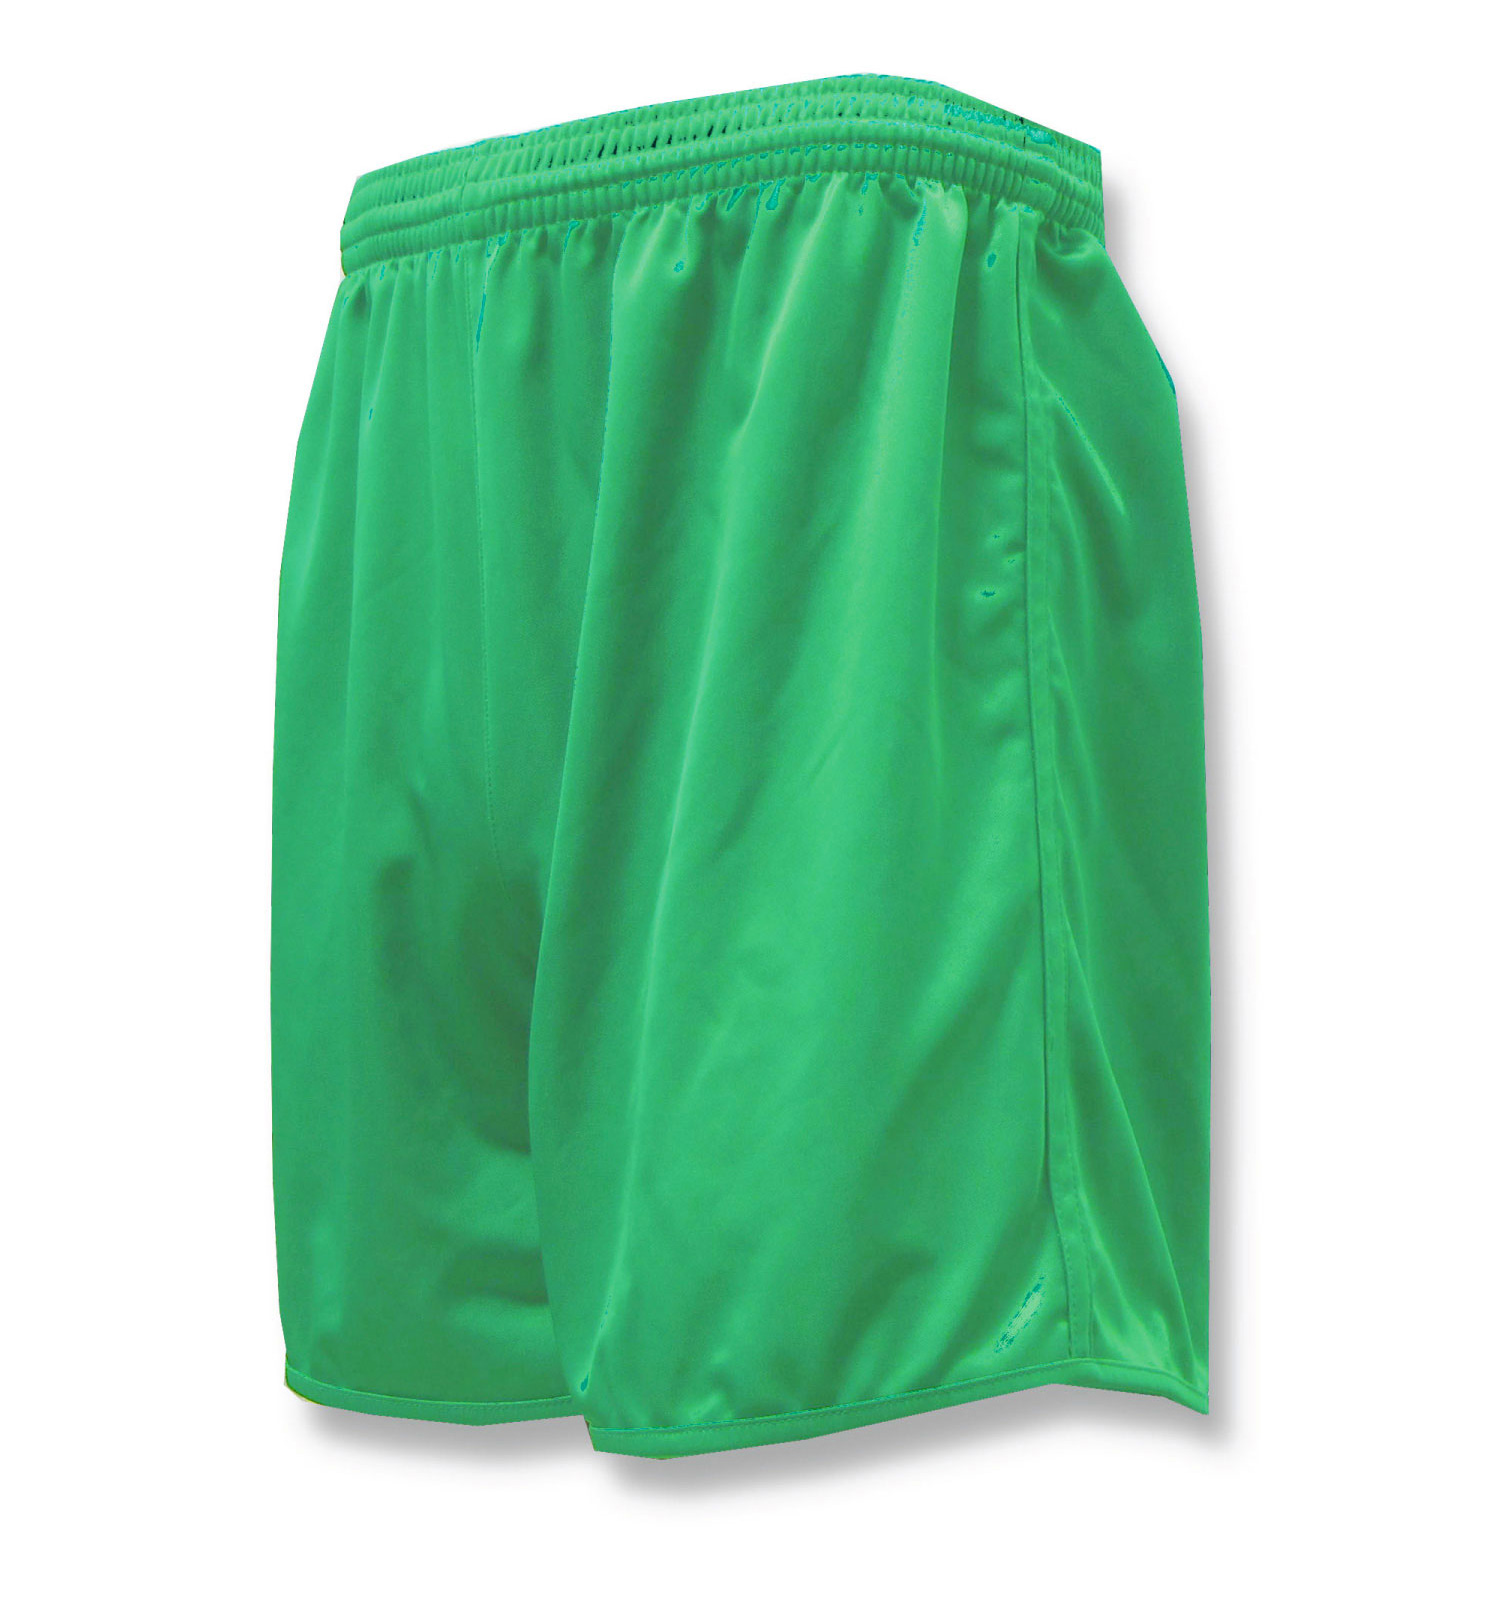 Bravo soccer shorts in kelly by Code Four Athletics